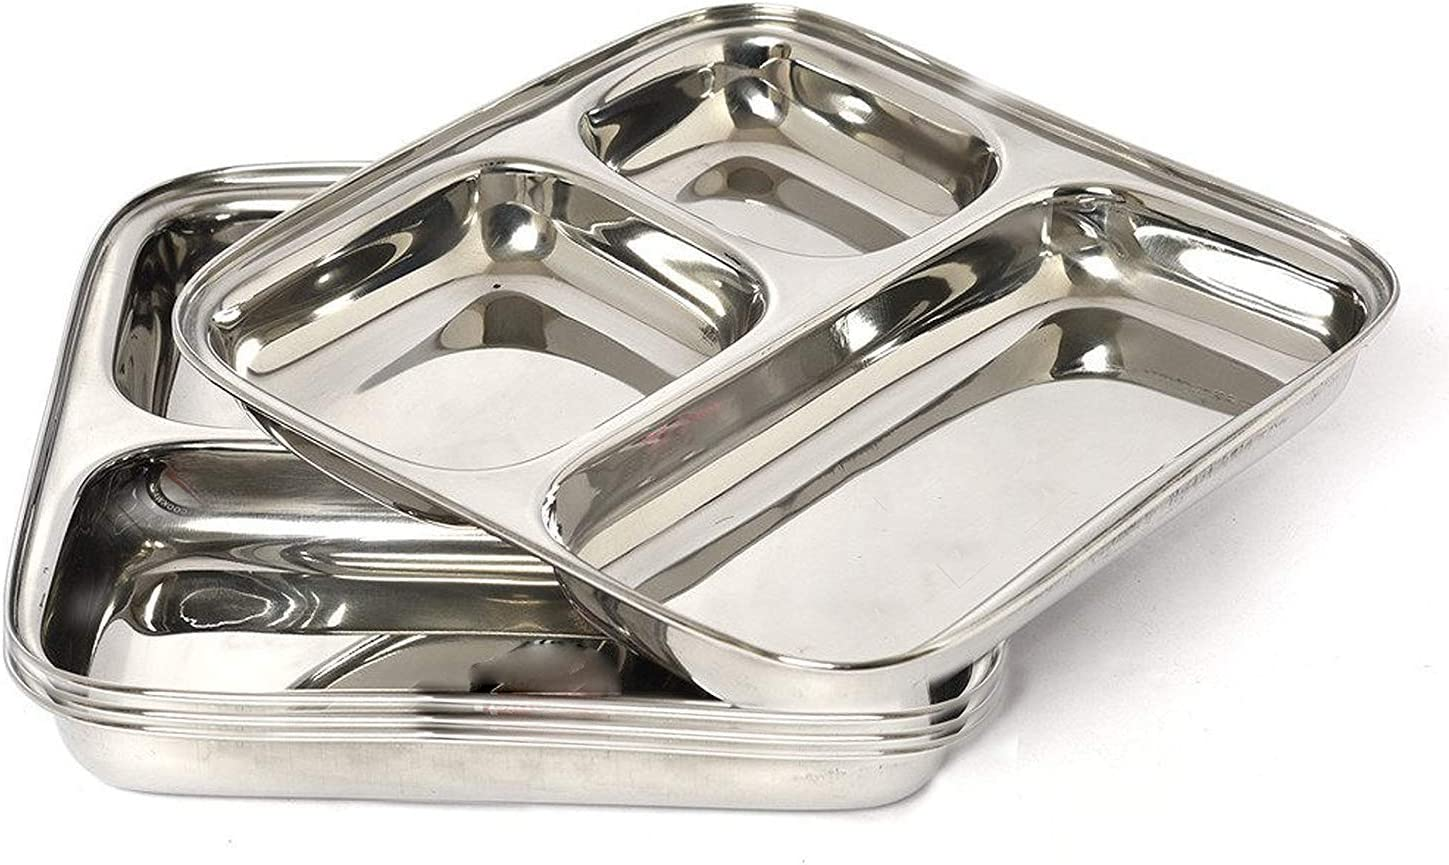 IndiaBigShop 100% Stainless Steel Three in one Dinner Plate Three sections divided plate Three section plate -Set of 4